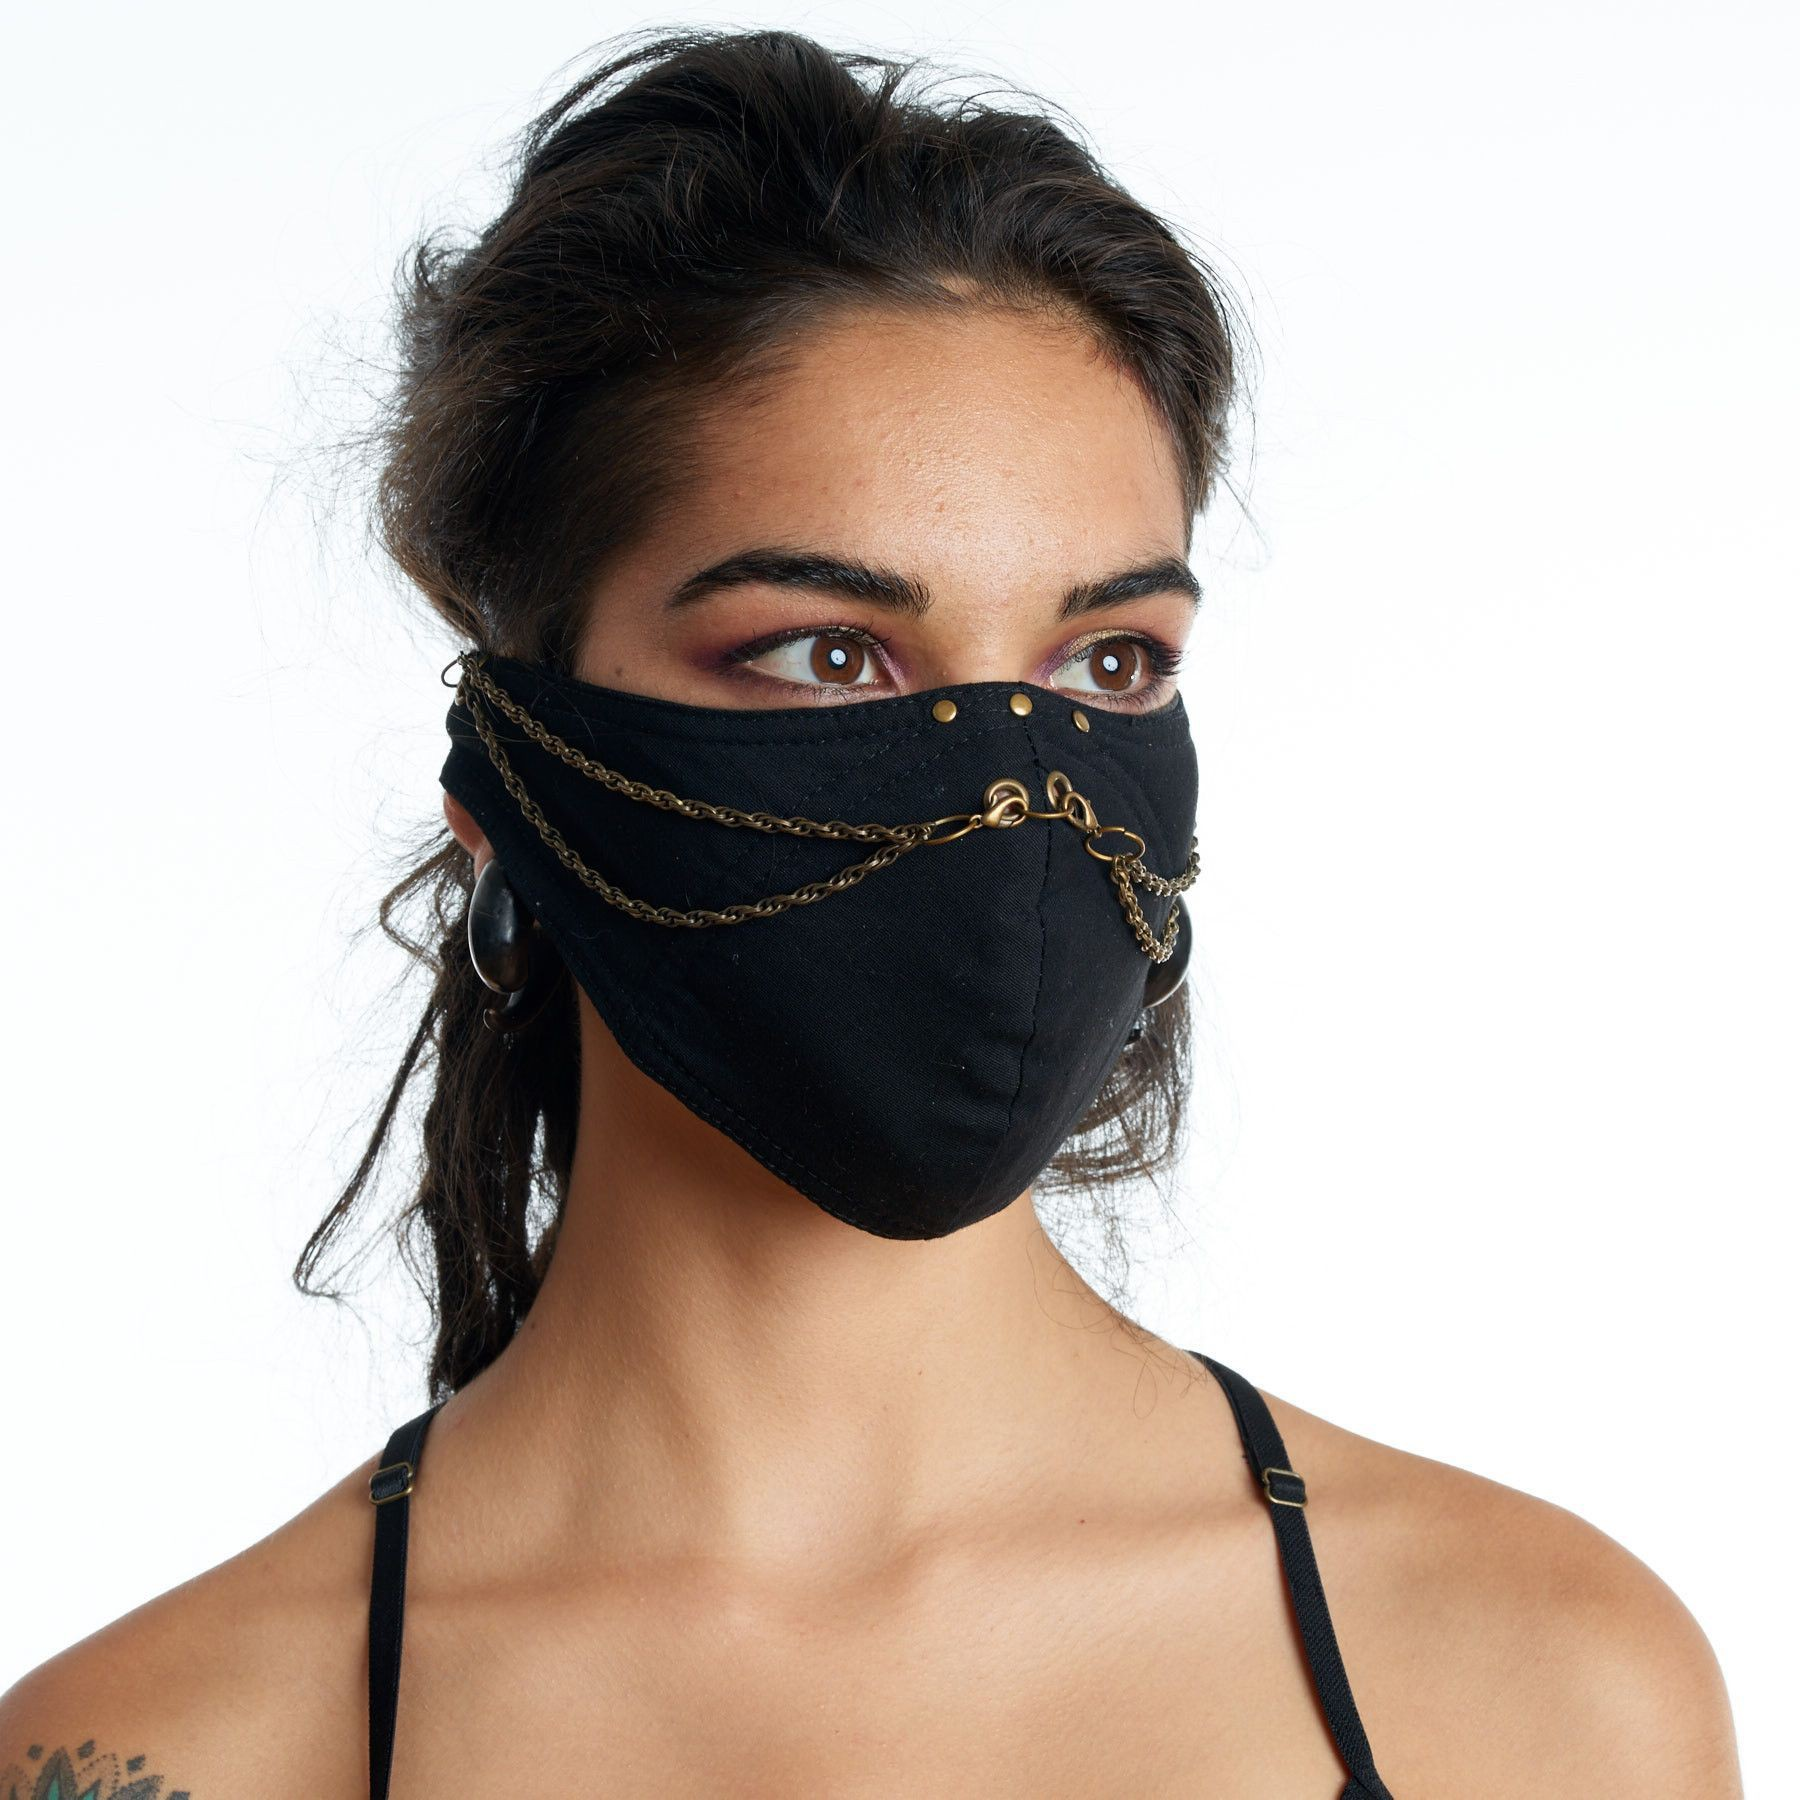 Black ninja face mask personal protective equipment, fashion accessory